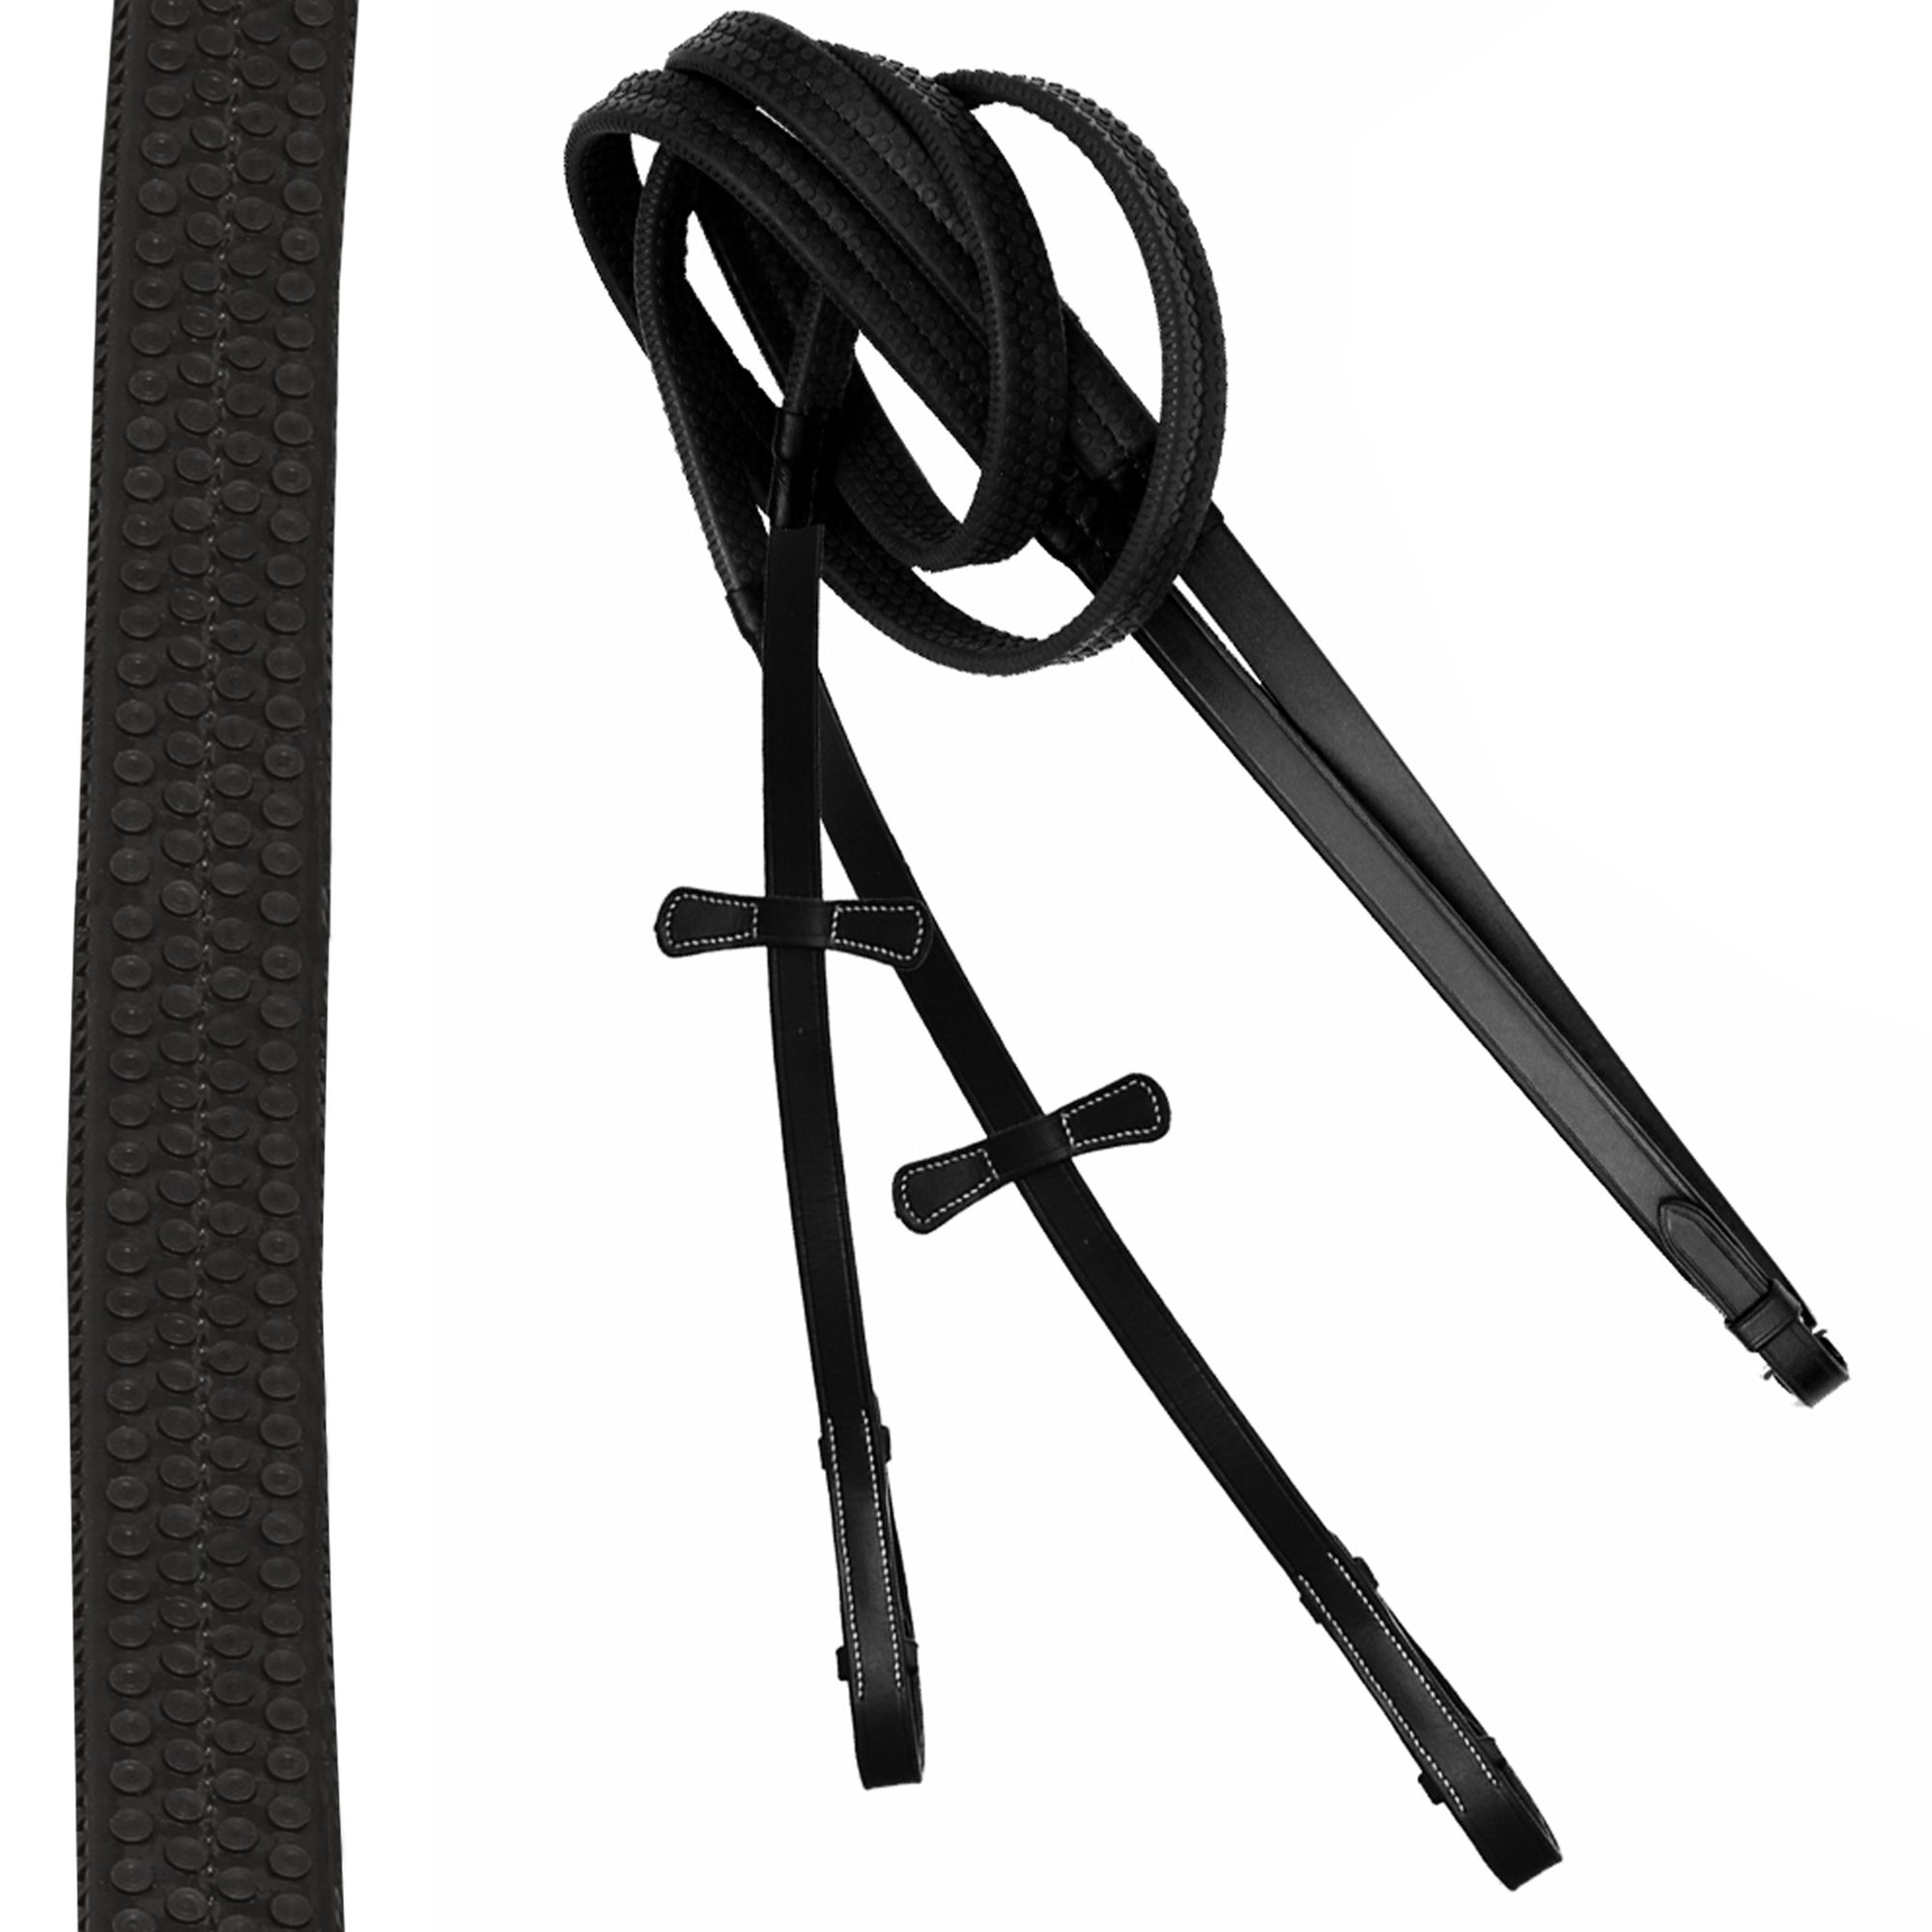 ExionPro PP Rubber Reins with Leaf Style Martingale Stoppers-Bridles & Reins